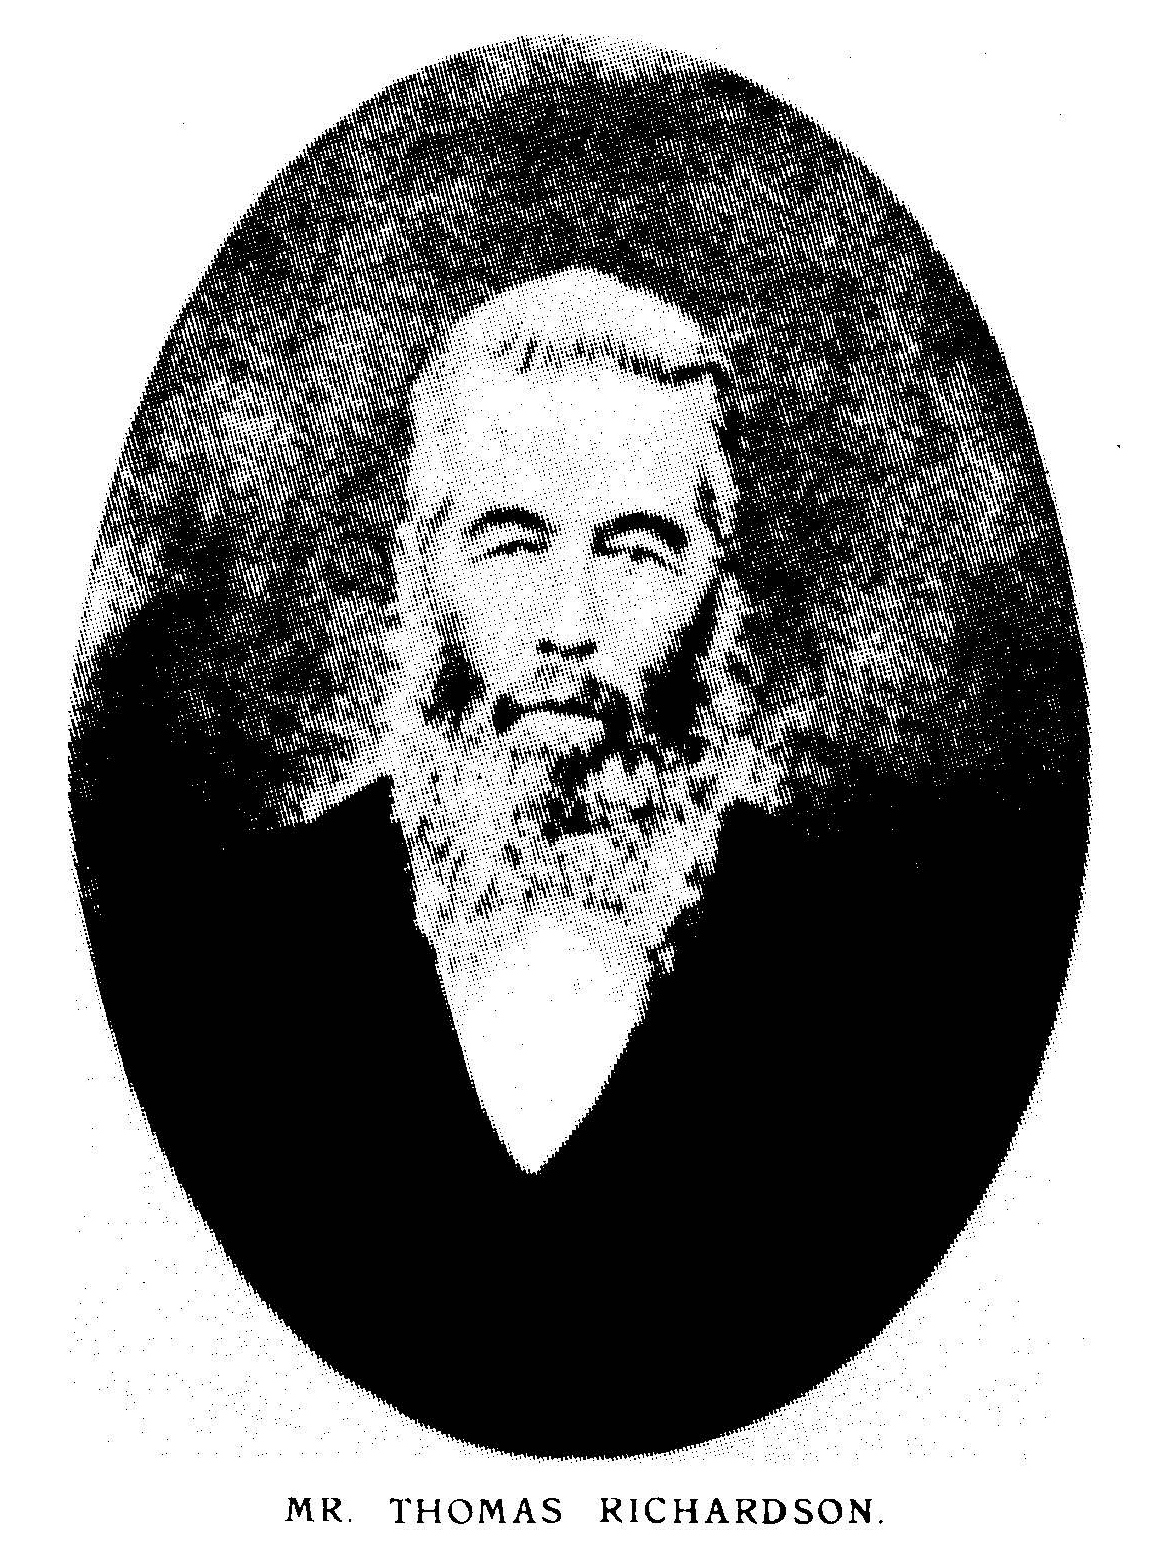 Thomas Richardson